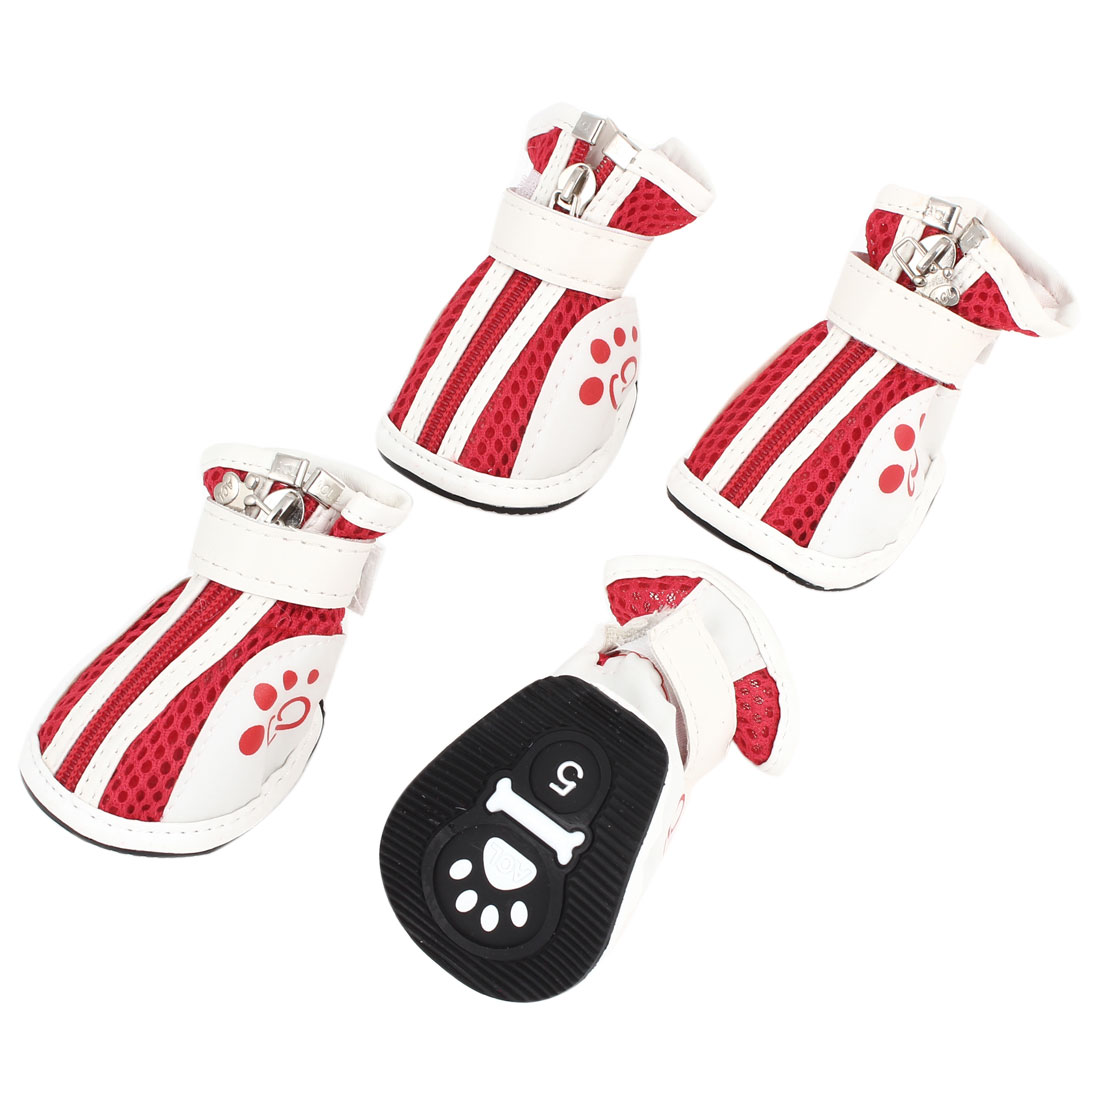 2 Pair Hook Loop Closure Pet Yorkie Dog Meshy Design Shoes Boots Booties White Red Size S